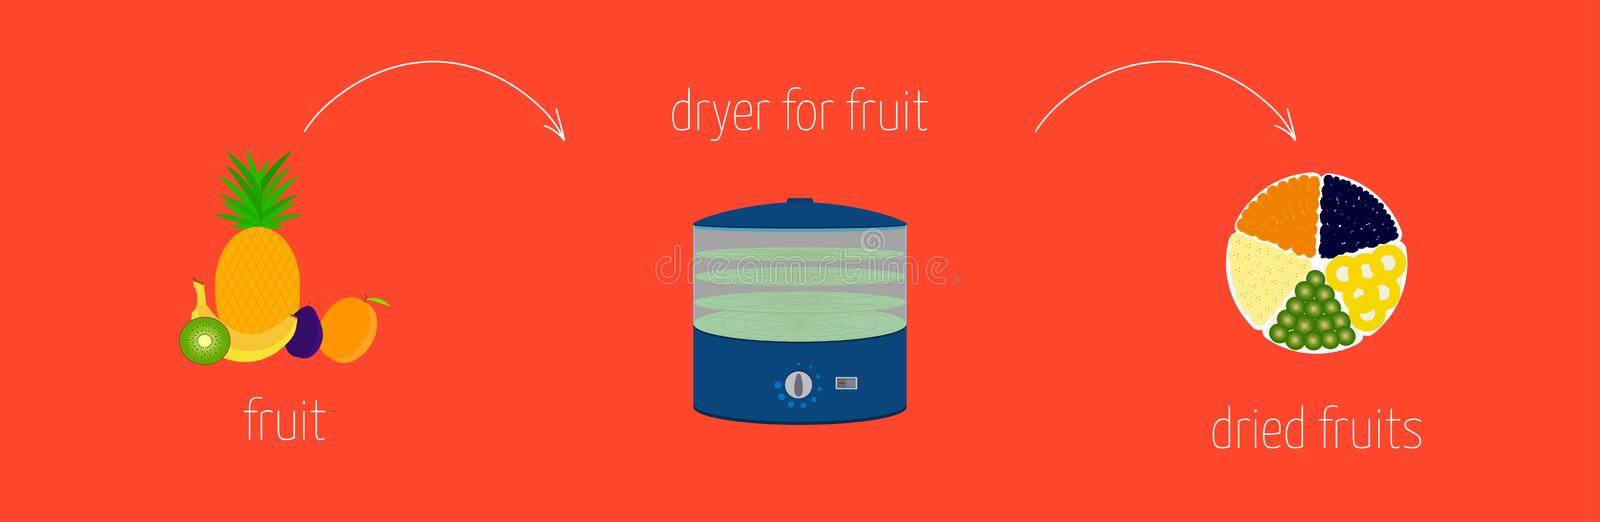 Simple recipe instructions on how to make dried using a dryer for fruits and vegetables.  vector illustration